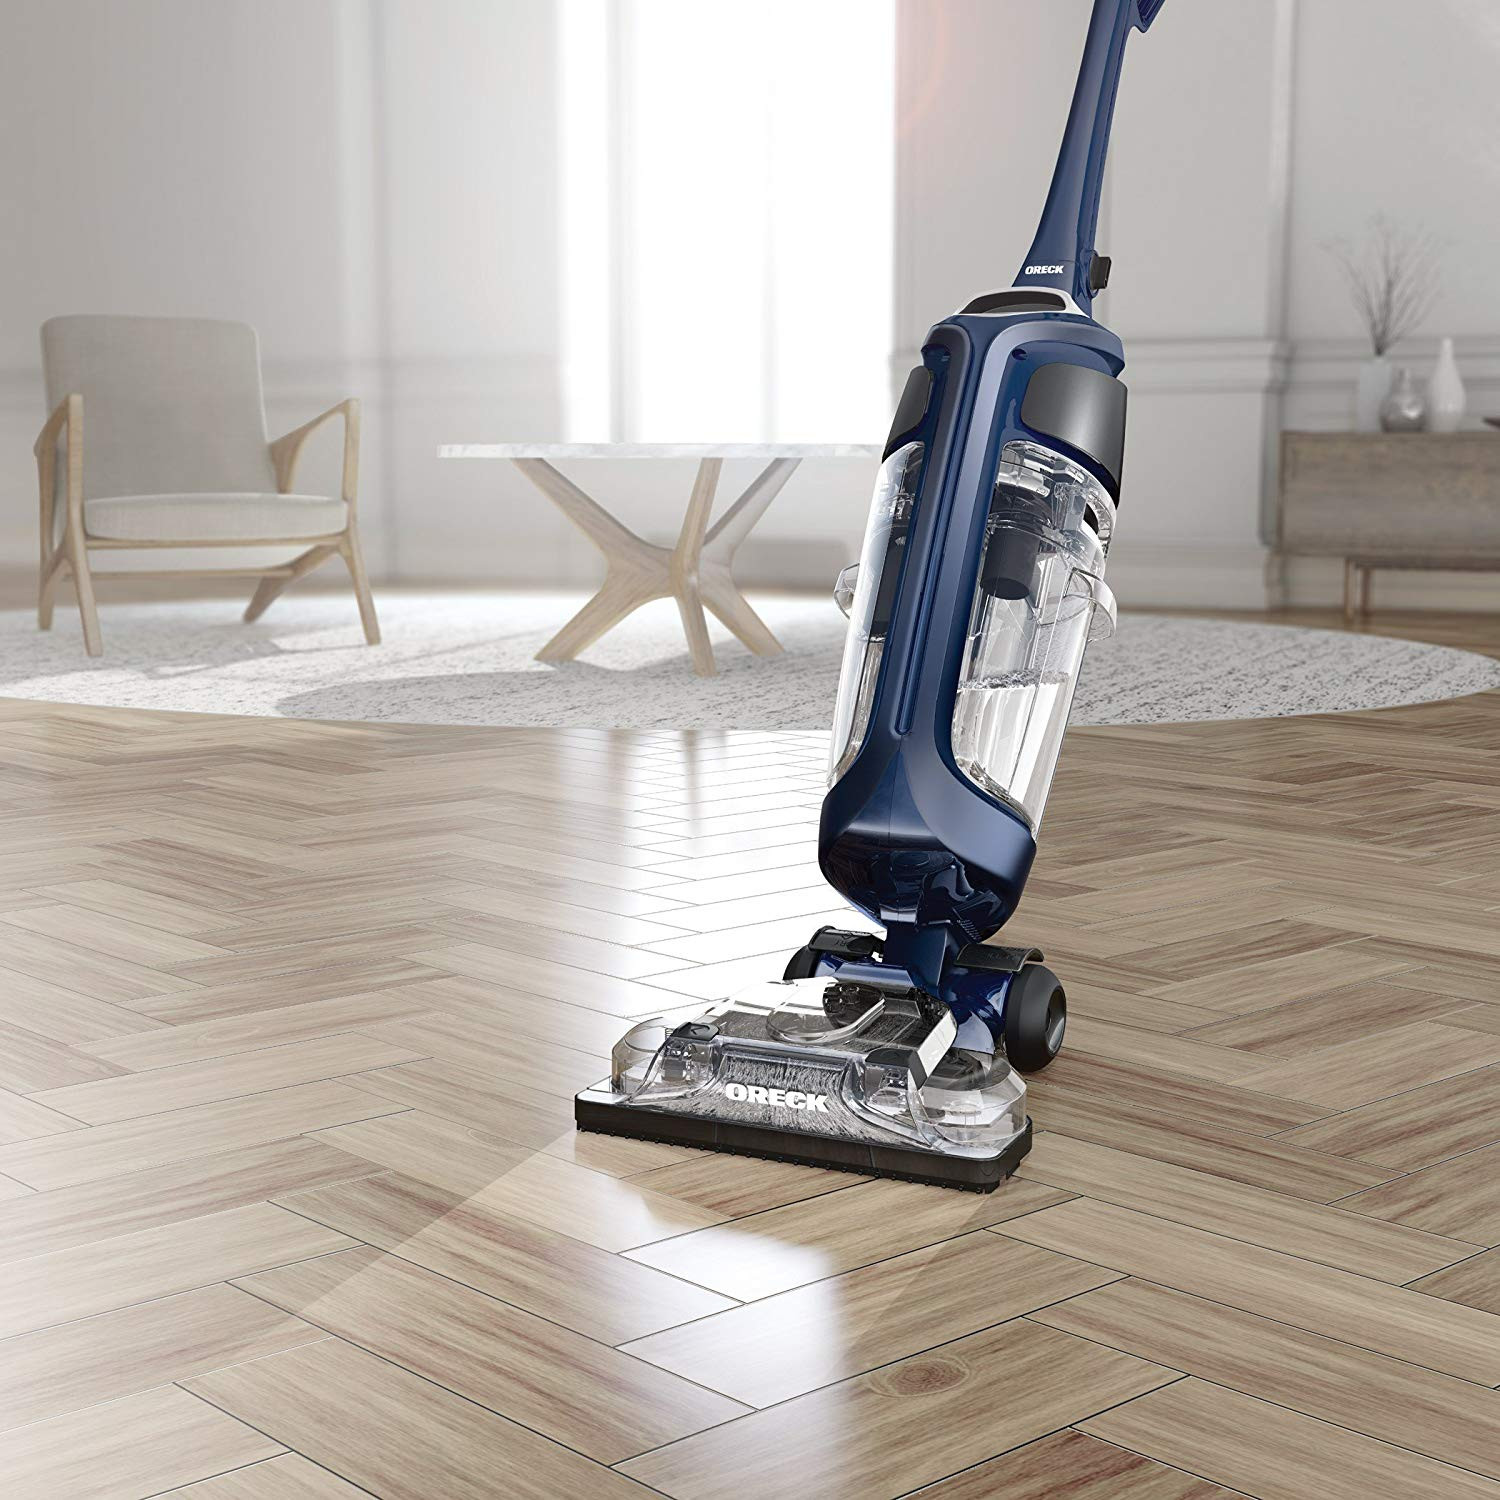 do hardwood floor installers move furniture of amazon com oreck surface scrub hard floor cleaner corded home with regard to amazon com oreck surface scrub hard floor cleaner corded home kitchen